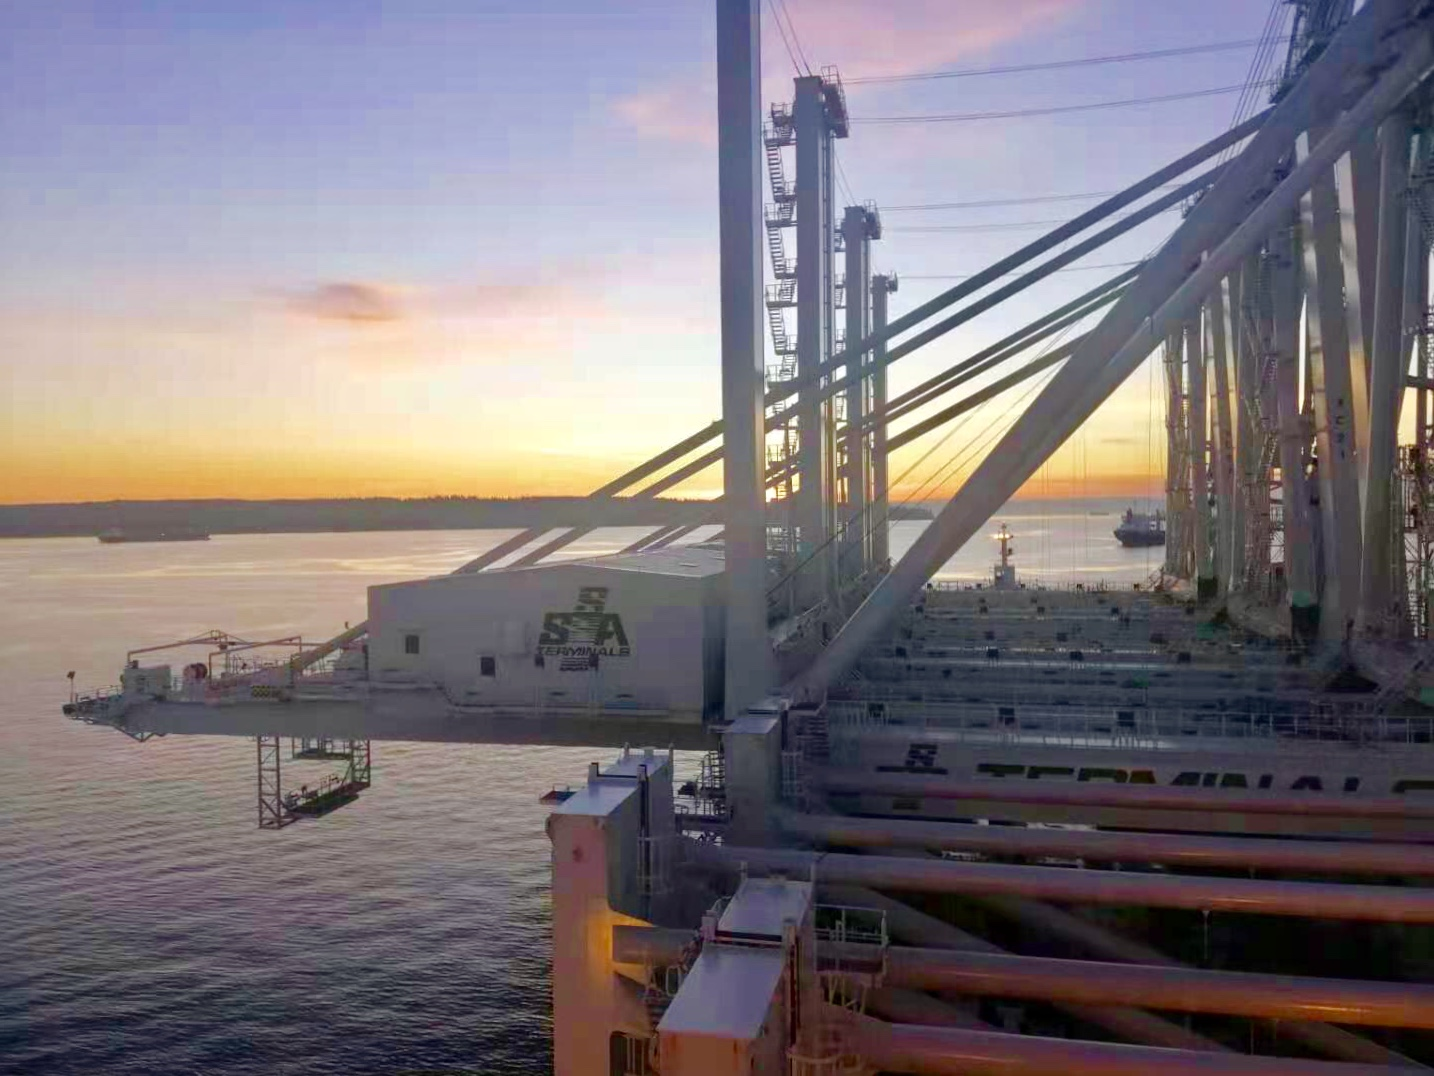 SSA invests in large STS cranes at Port of Oakland